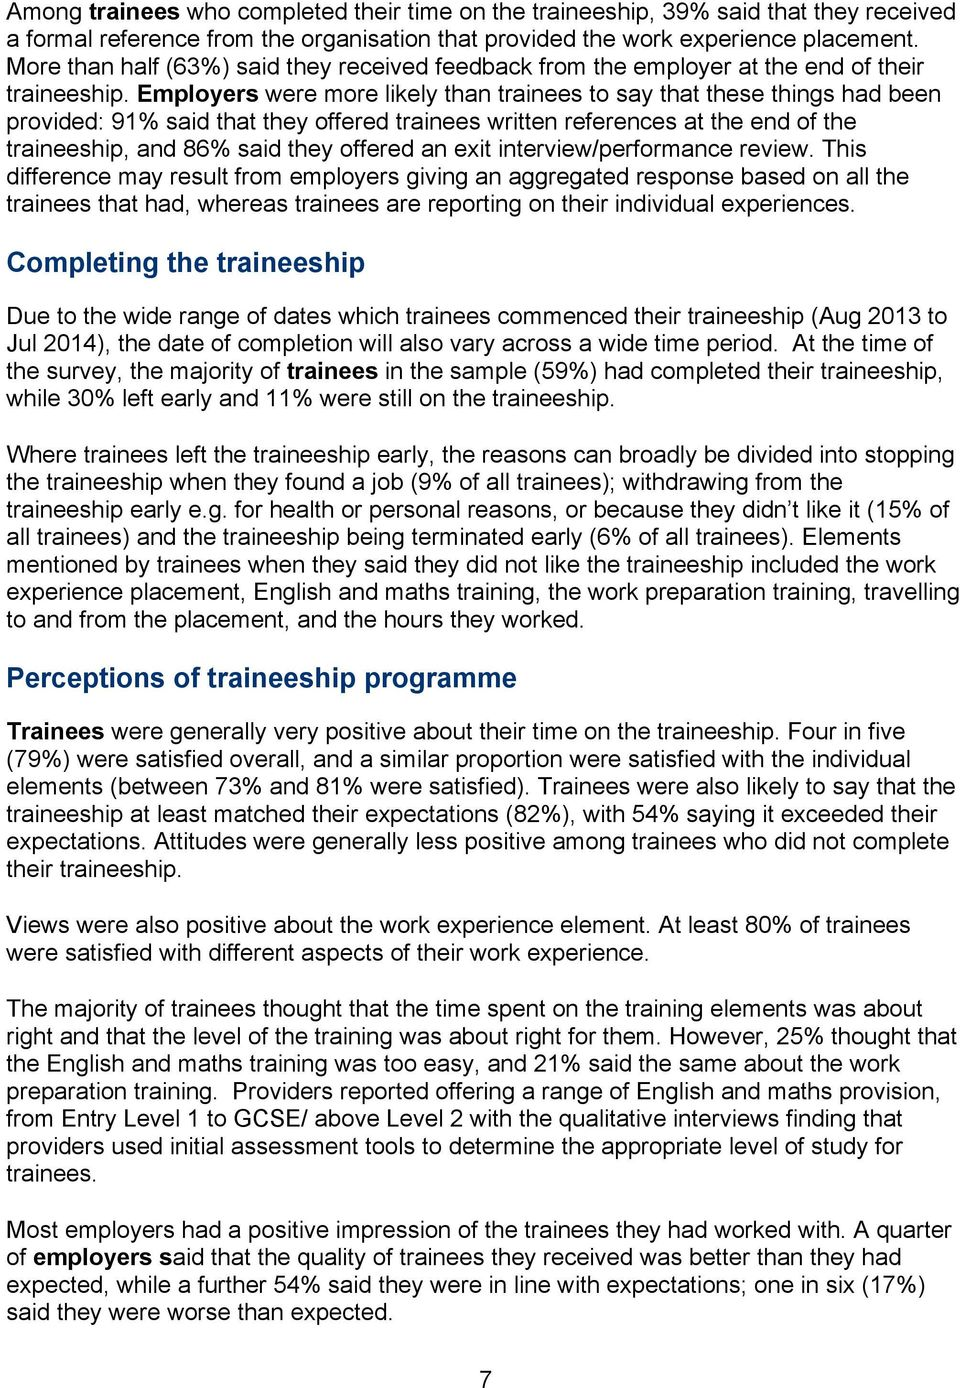 Employers were more likely than trainees to say that these things had been provided: 91% said that they offered trainees written references at the end of the traineeship, and 86% said they offered an